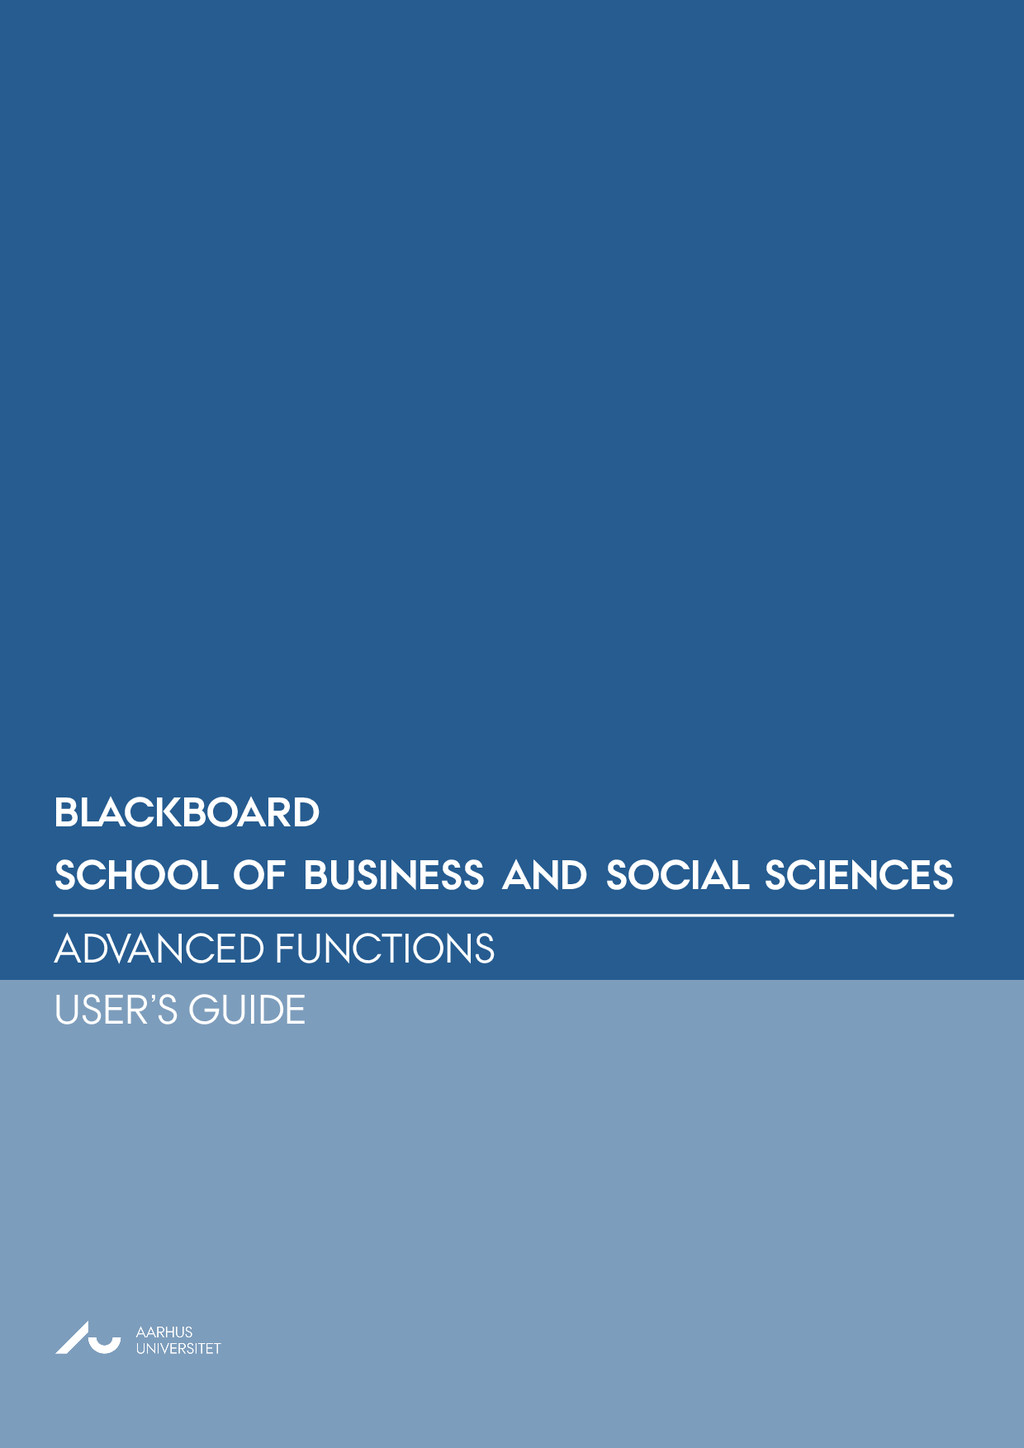 School of BUSINESS AND SOCIAL SCIENCES bLAC...